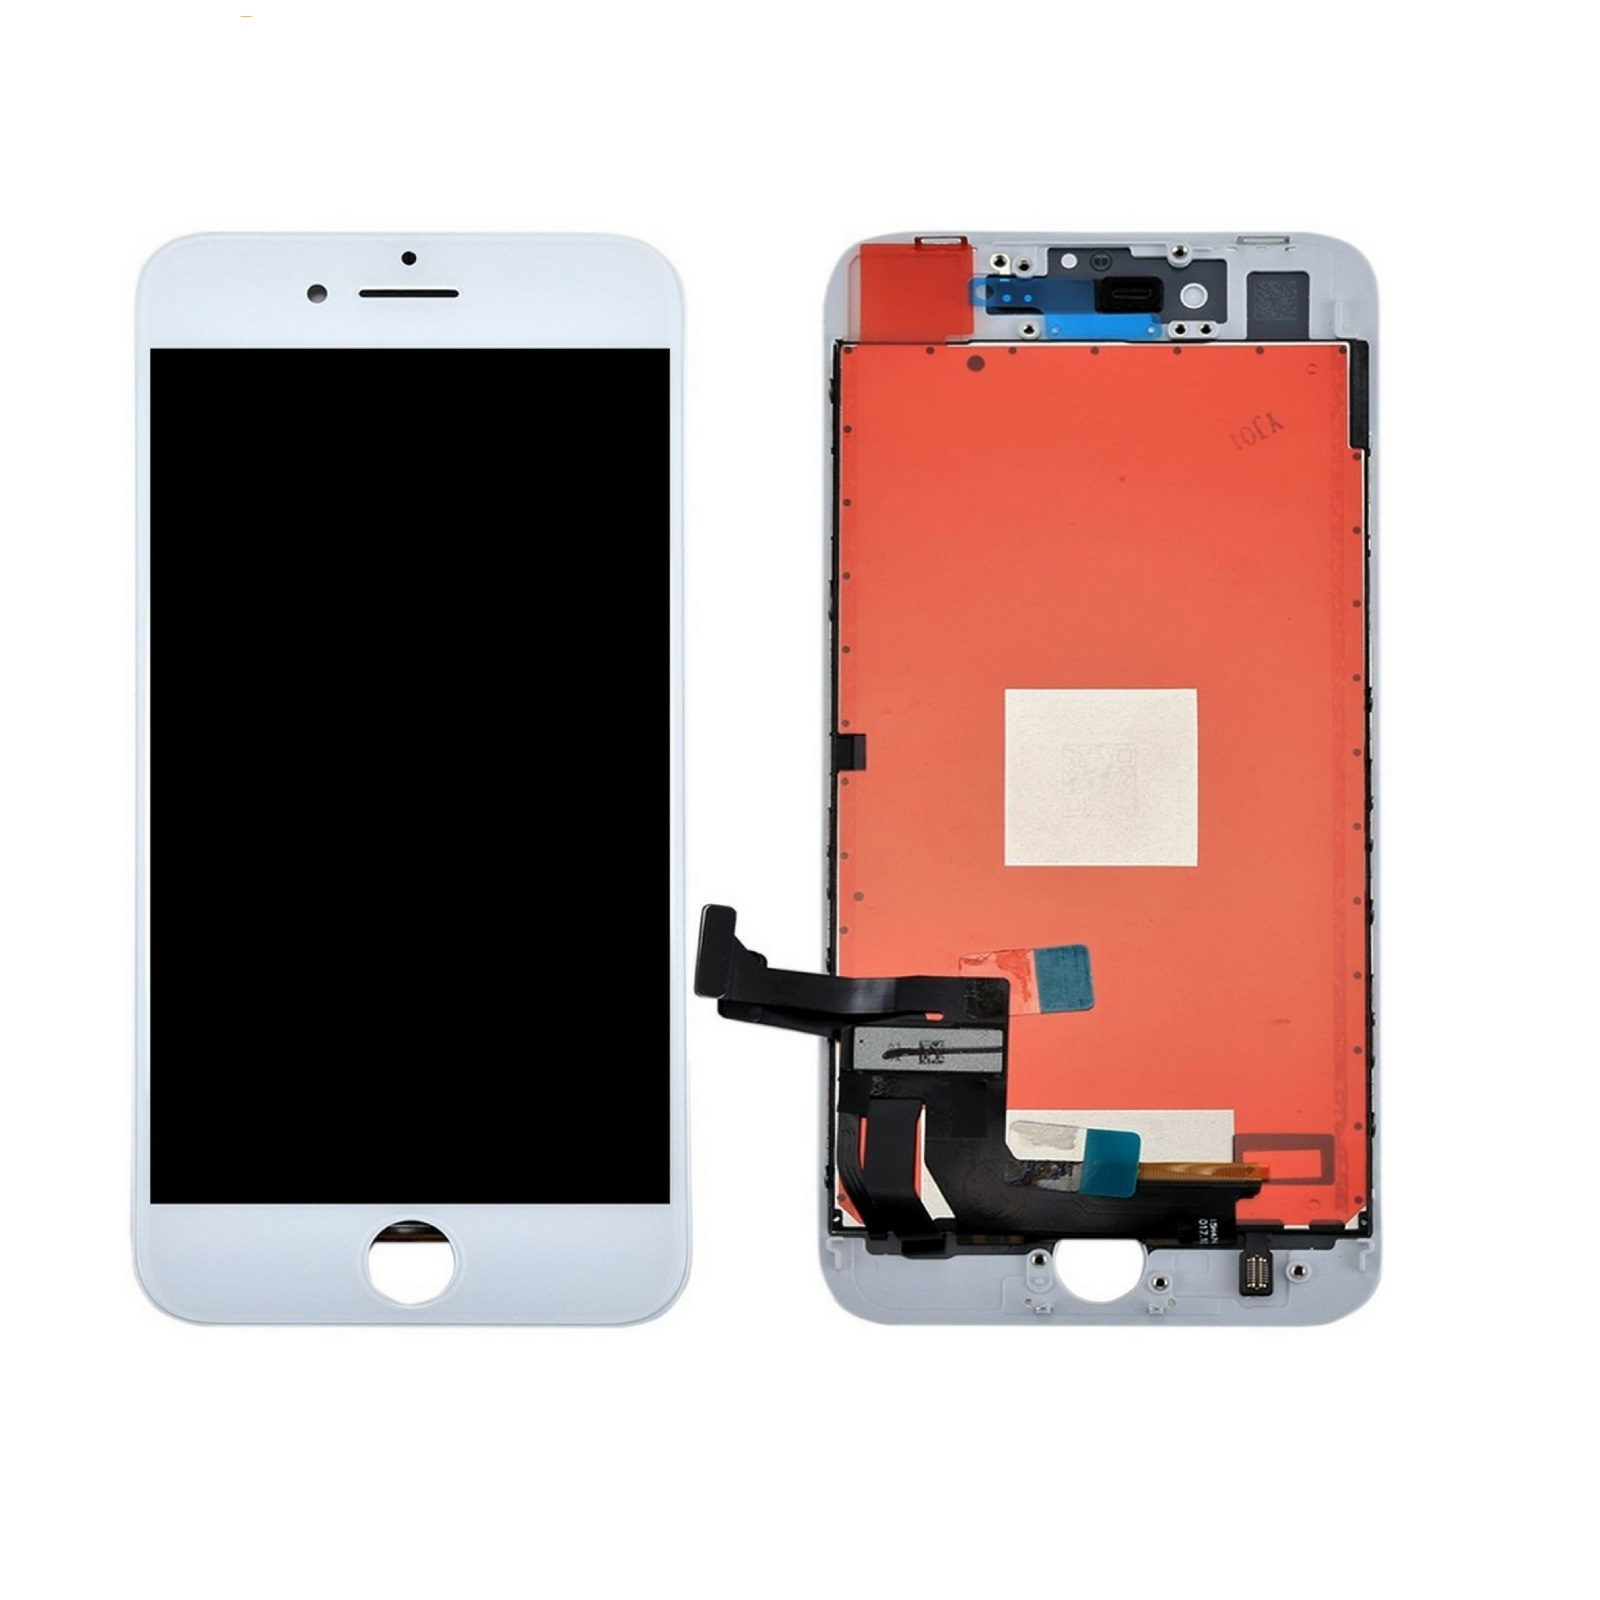 Touch screen lcd display frame bianco per apple iphone 8 modello A1863, A1905, A1906 (Japan1)+ biadesivo